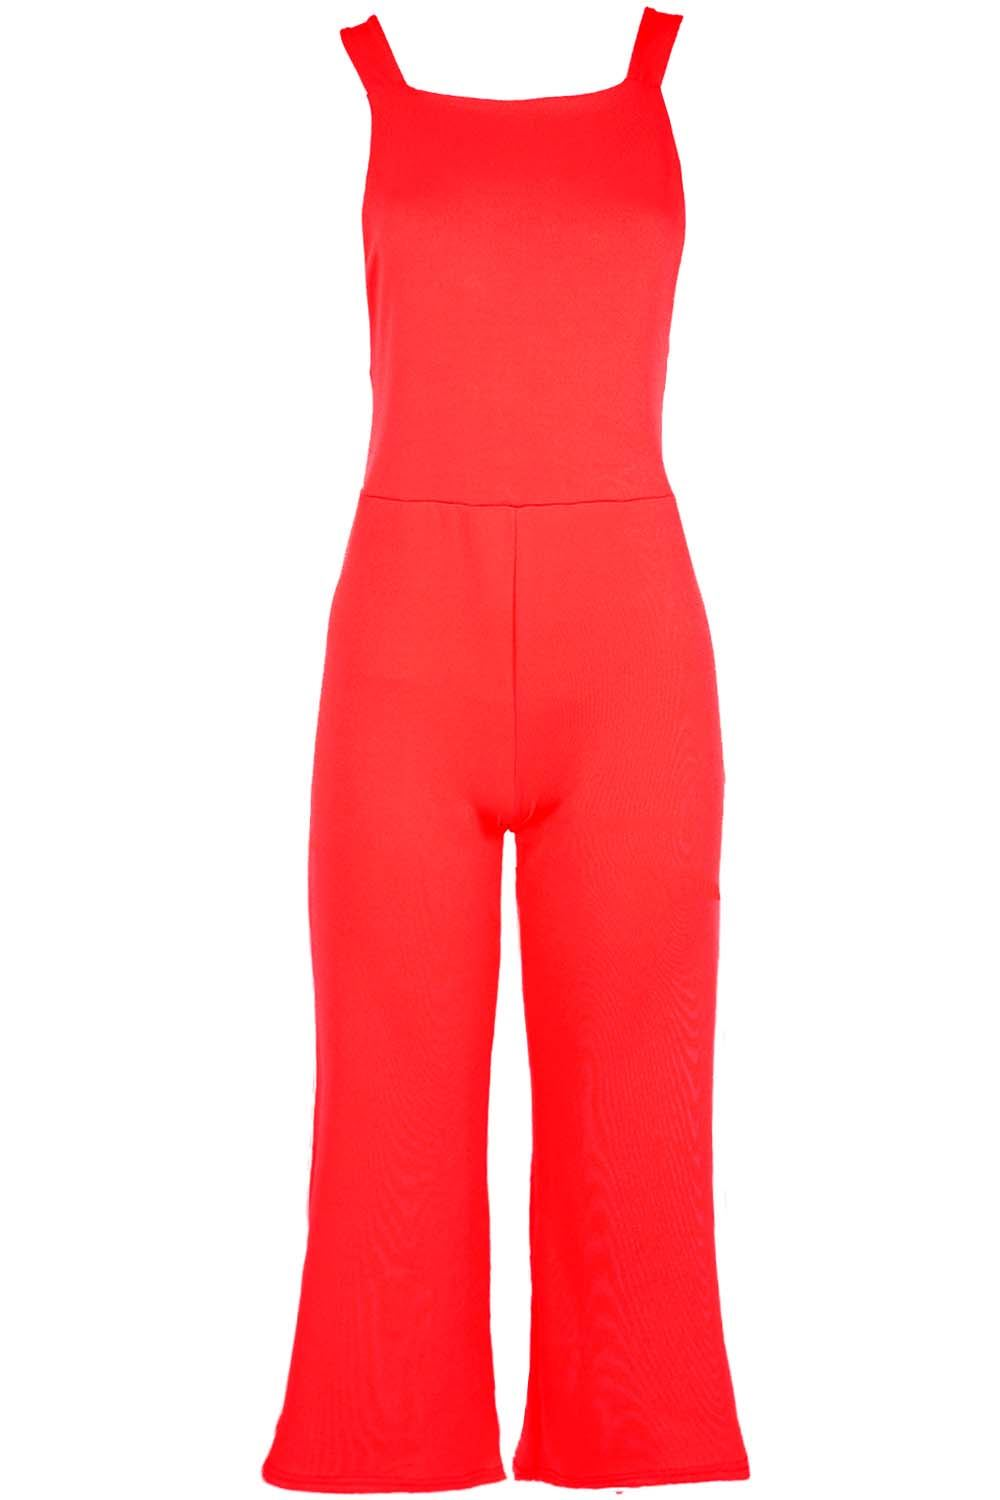 a750326e8bf Ladies Womens 3 4 Length Dungaree All In One Palazzo Wide Leg ...